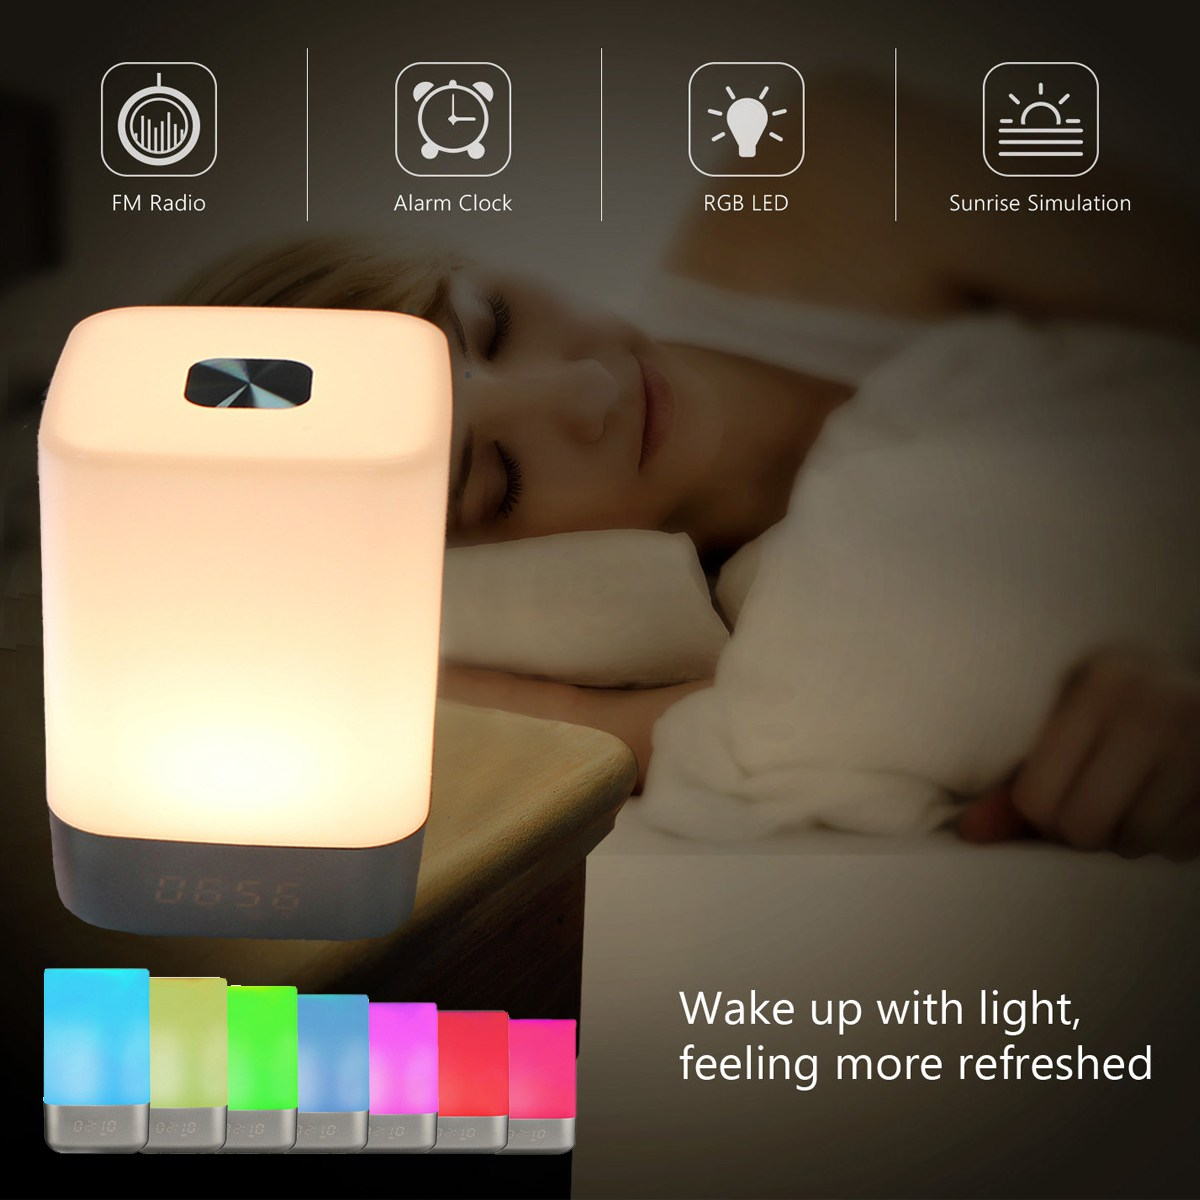 RGB LED Alarm Clock Bedside Lamp Touch Sensor Night Light USB Power Colorful Intelligent Table Light Bedroom Home Decor meaningsfull colorful diamond usb projector led night light sperker 7 color illusion luminaria sleepling lamp for bedroom decor